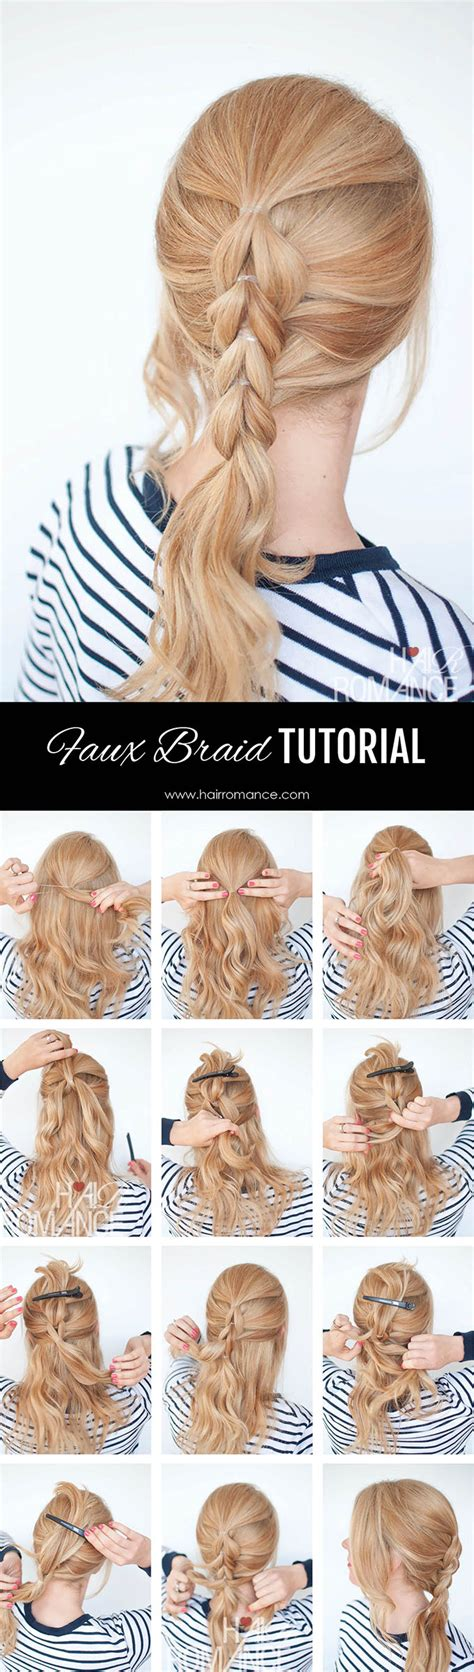 step by step written instructions for braids the no braid braid 5 pull through braid tutorials hair